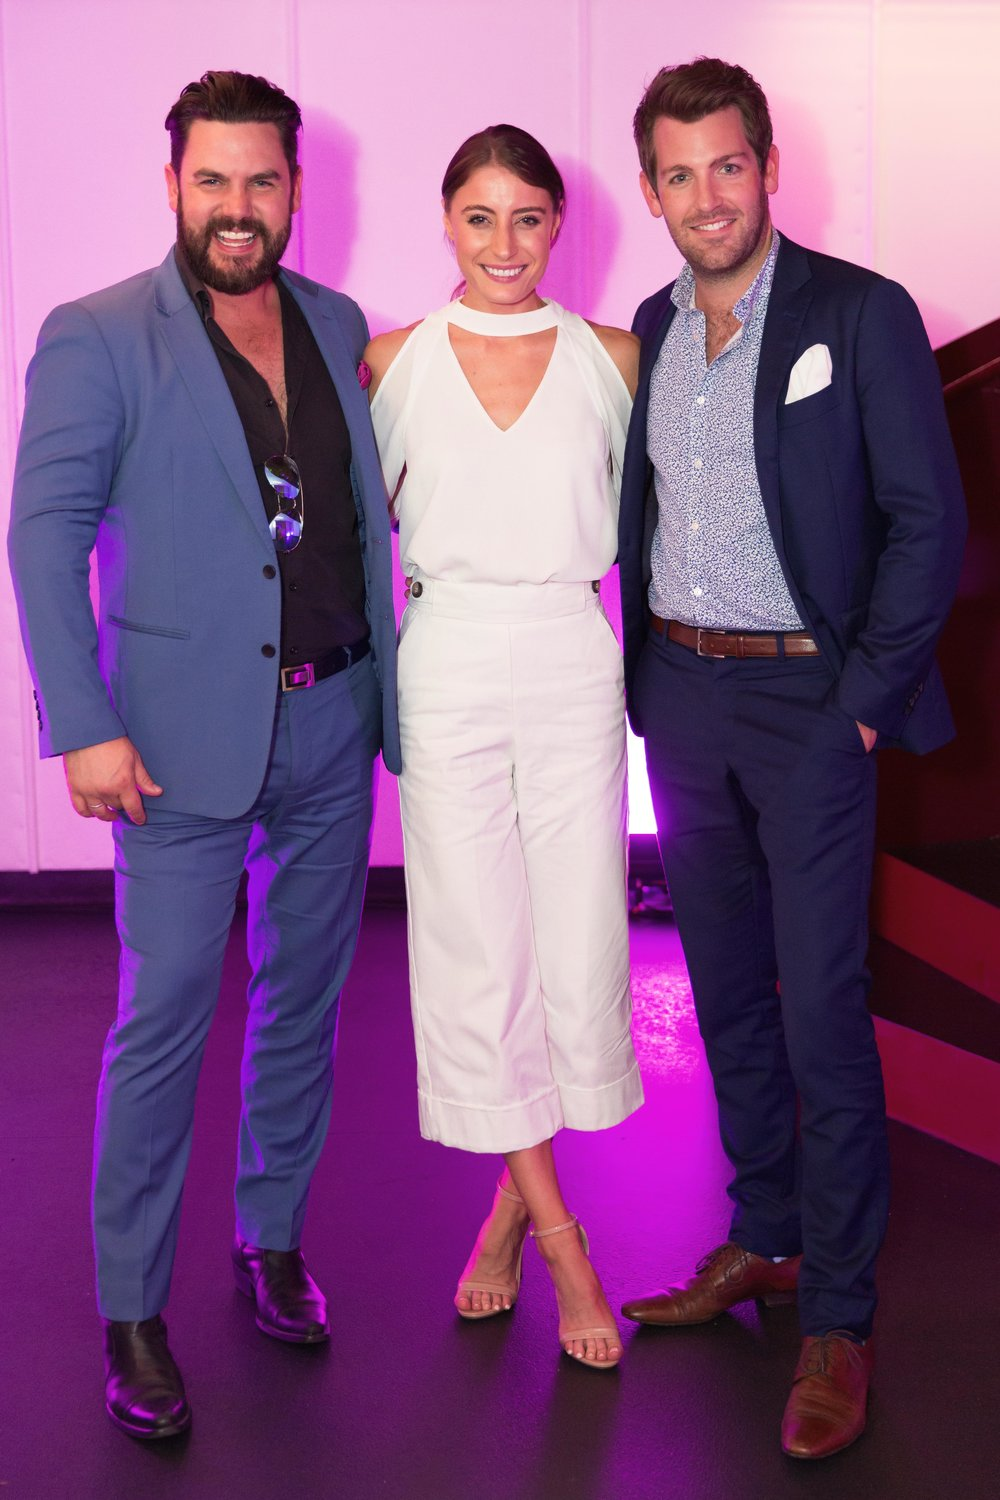 Ben Mingay, Rebecca Harding and Tim Ross